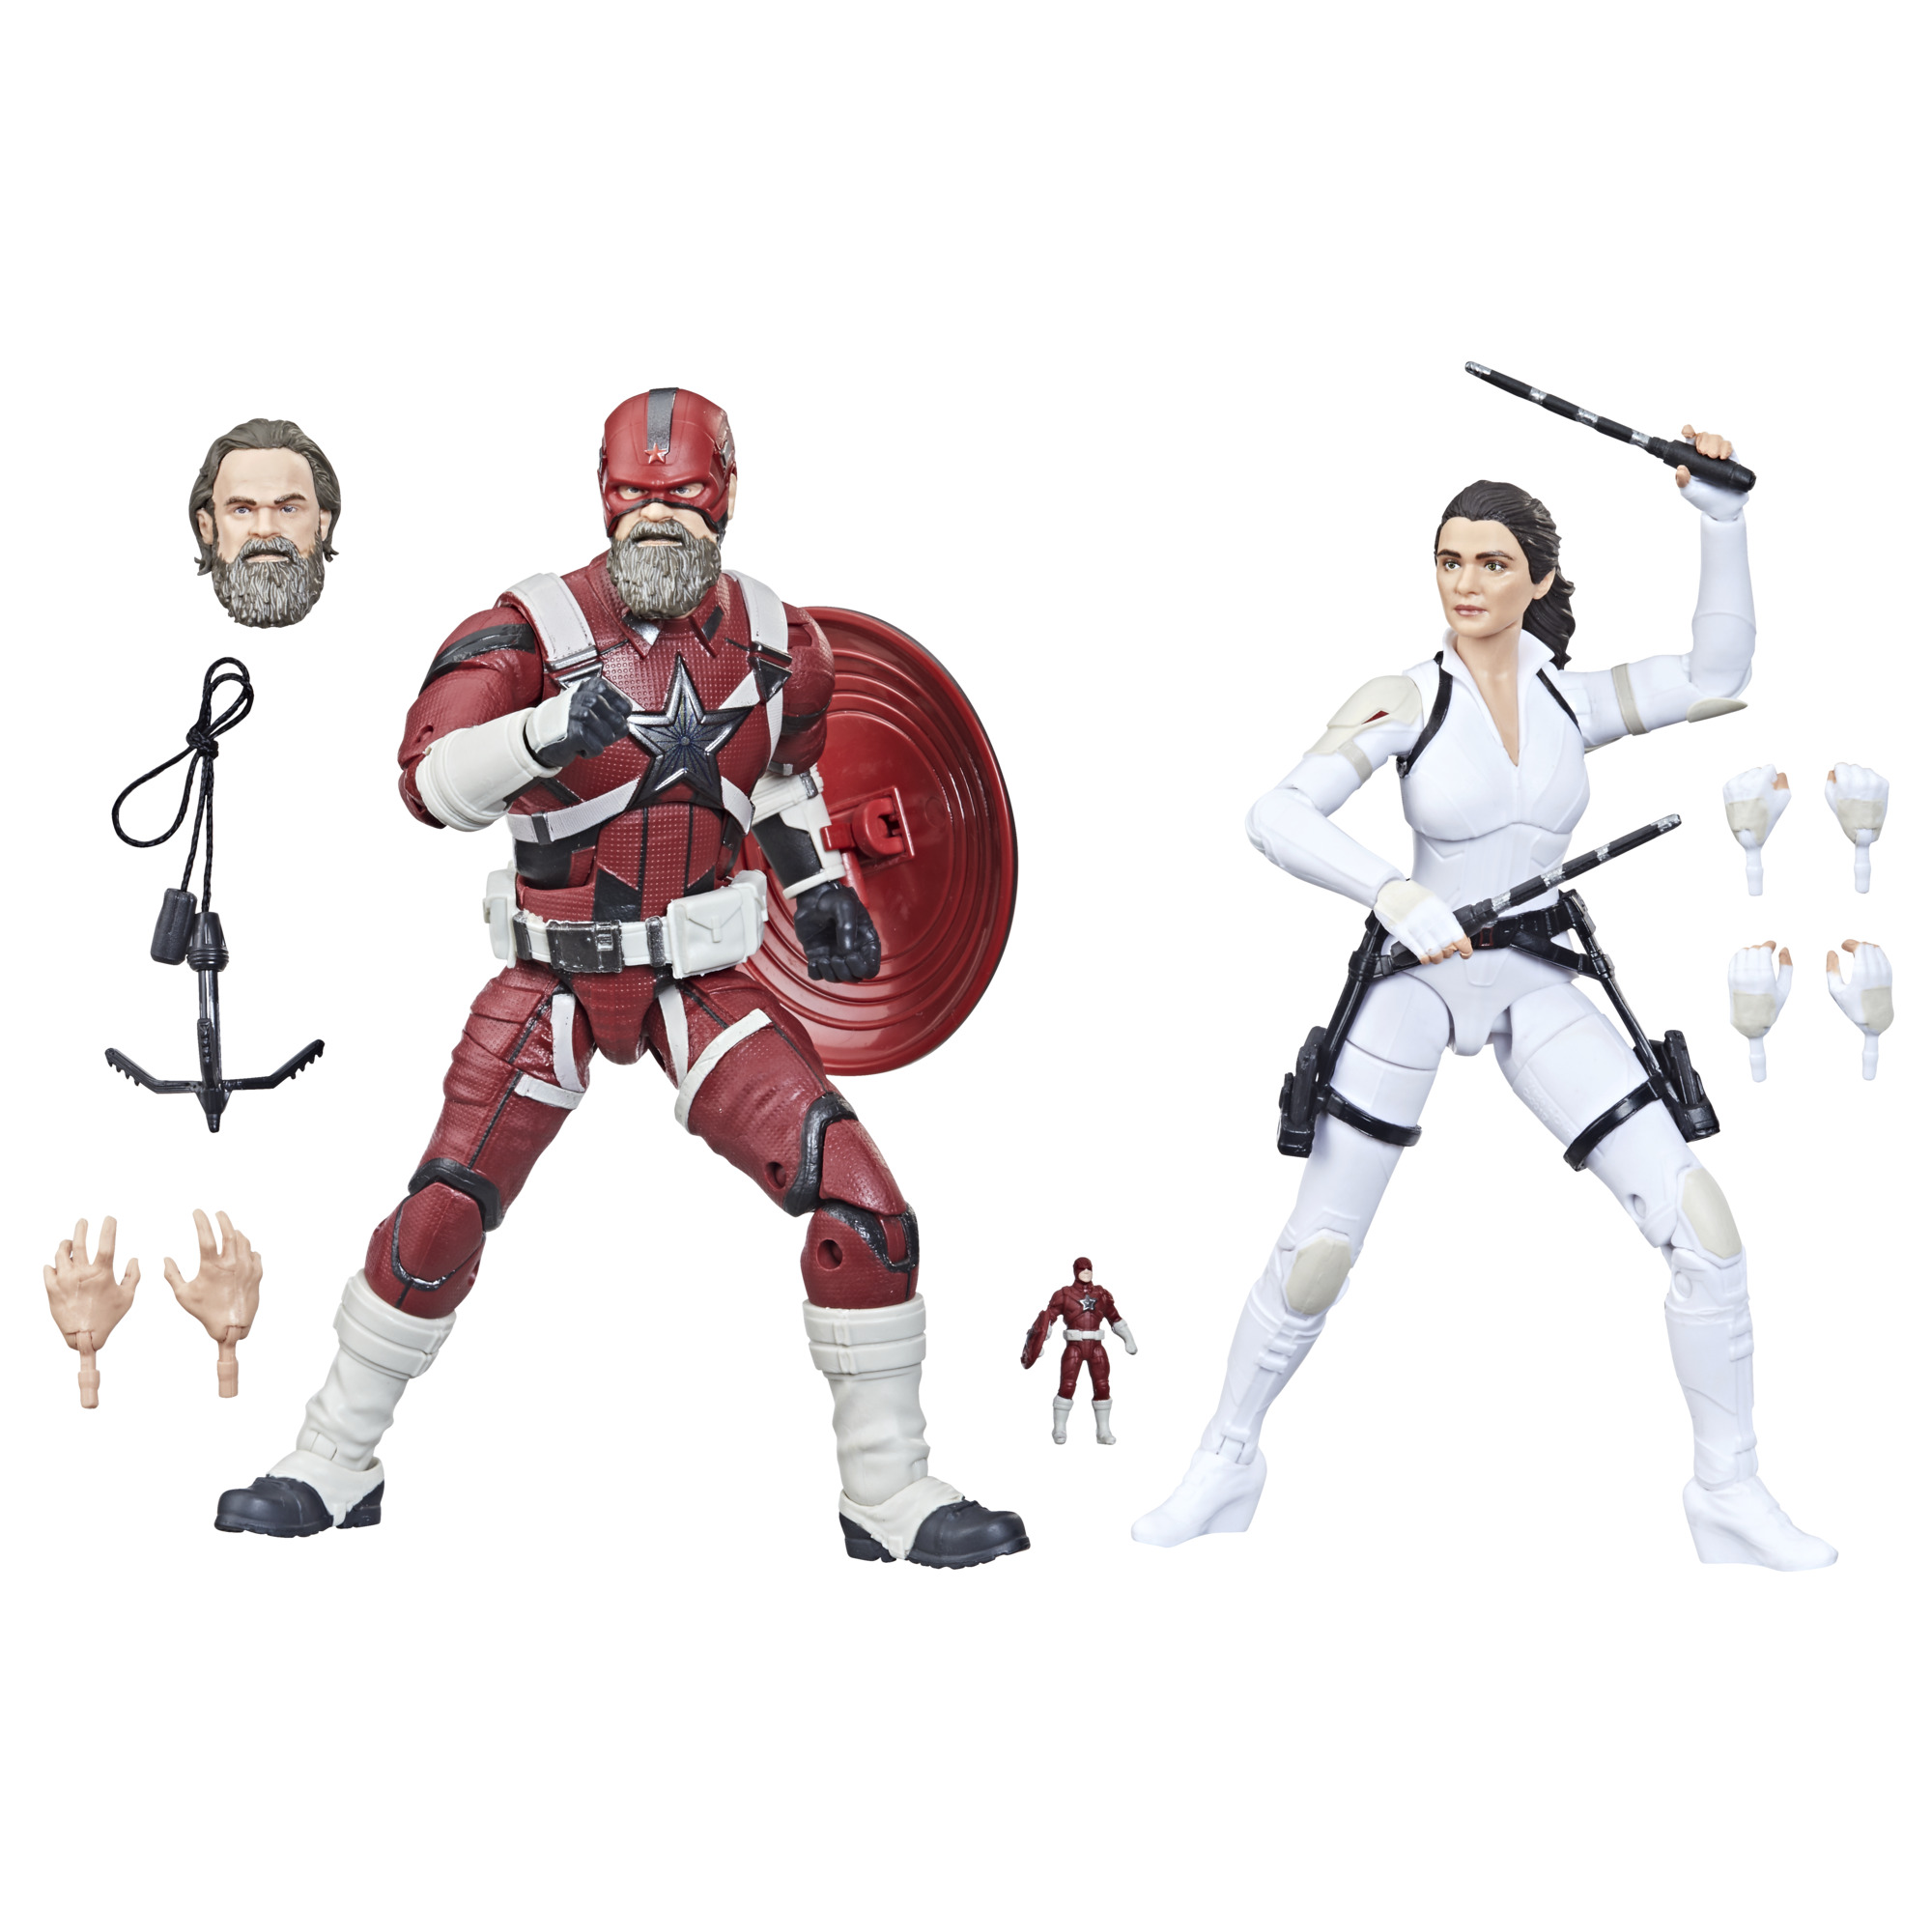 Marvel Legends: New 'WandaVision' and 'Black Widow' movie figures revealed